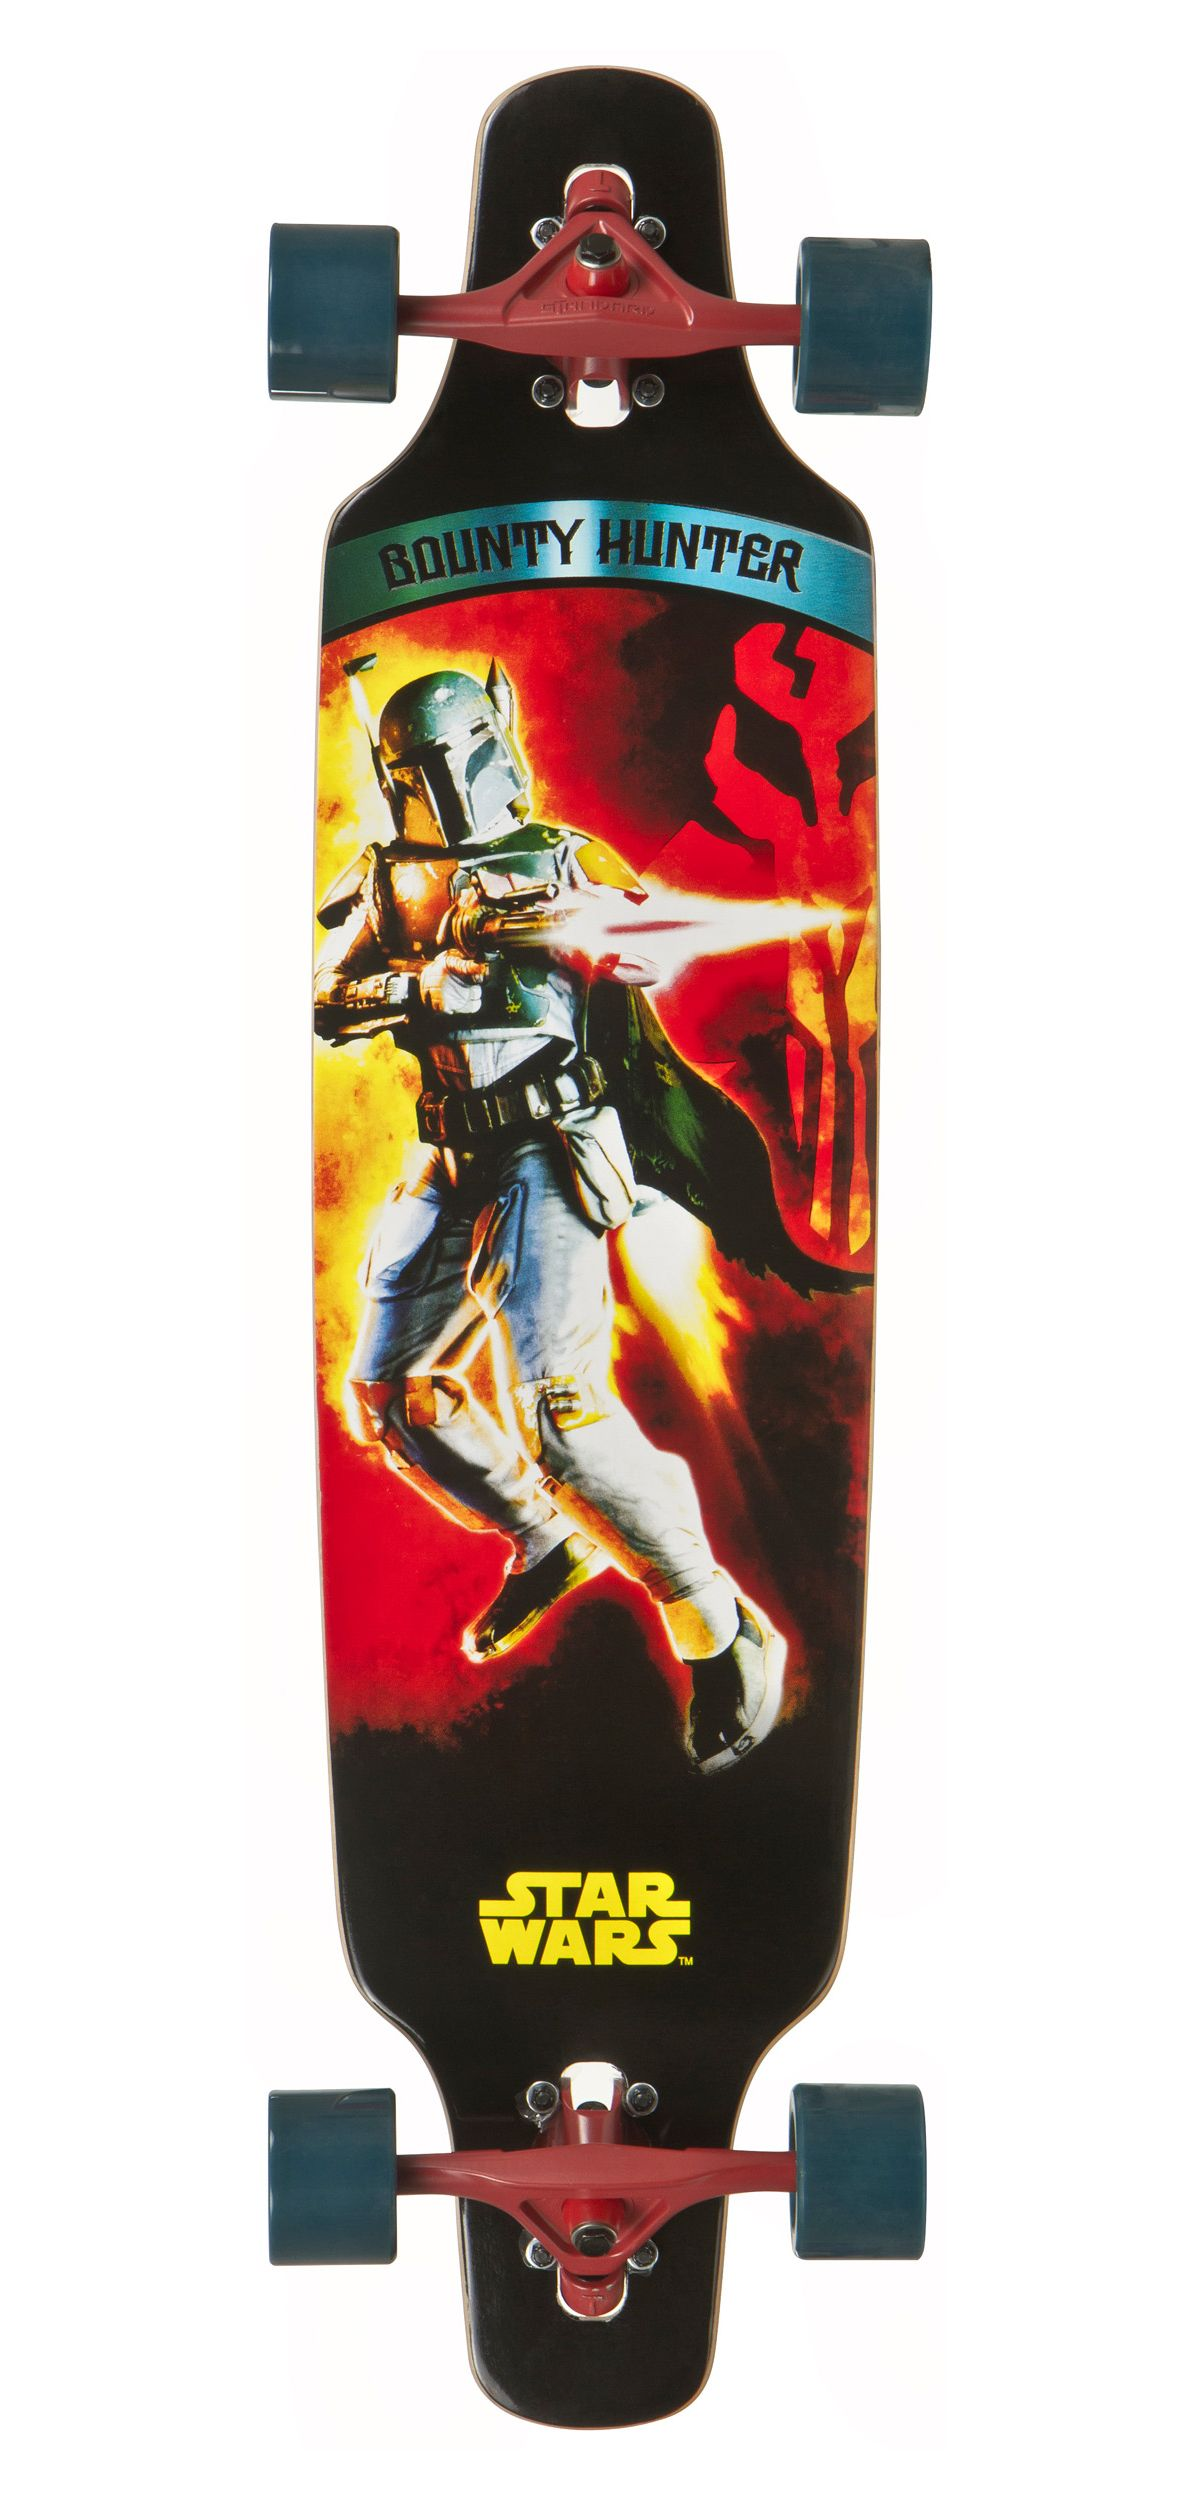 Star Wars Longboard, »Bounty Hunter«